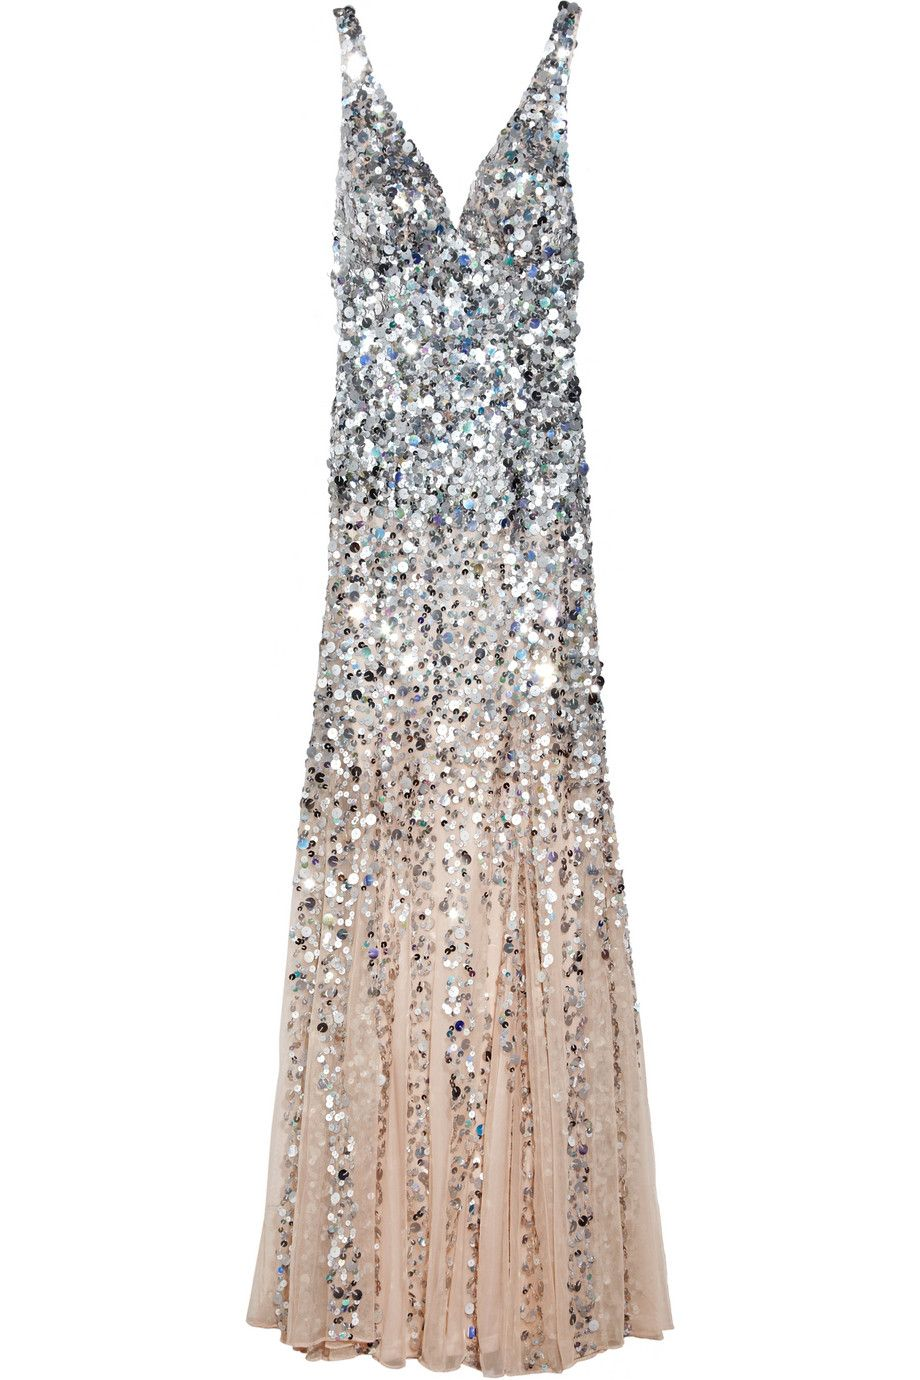 Dear sparkly dress please come live in my closet weull probably